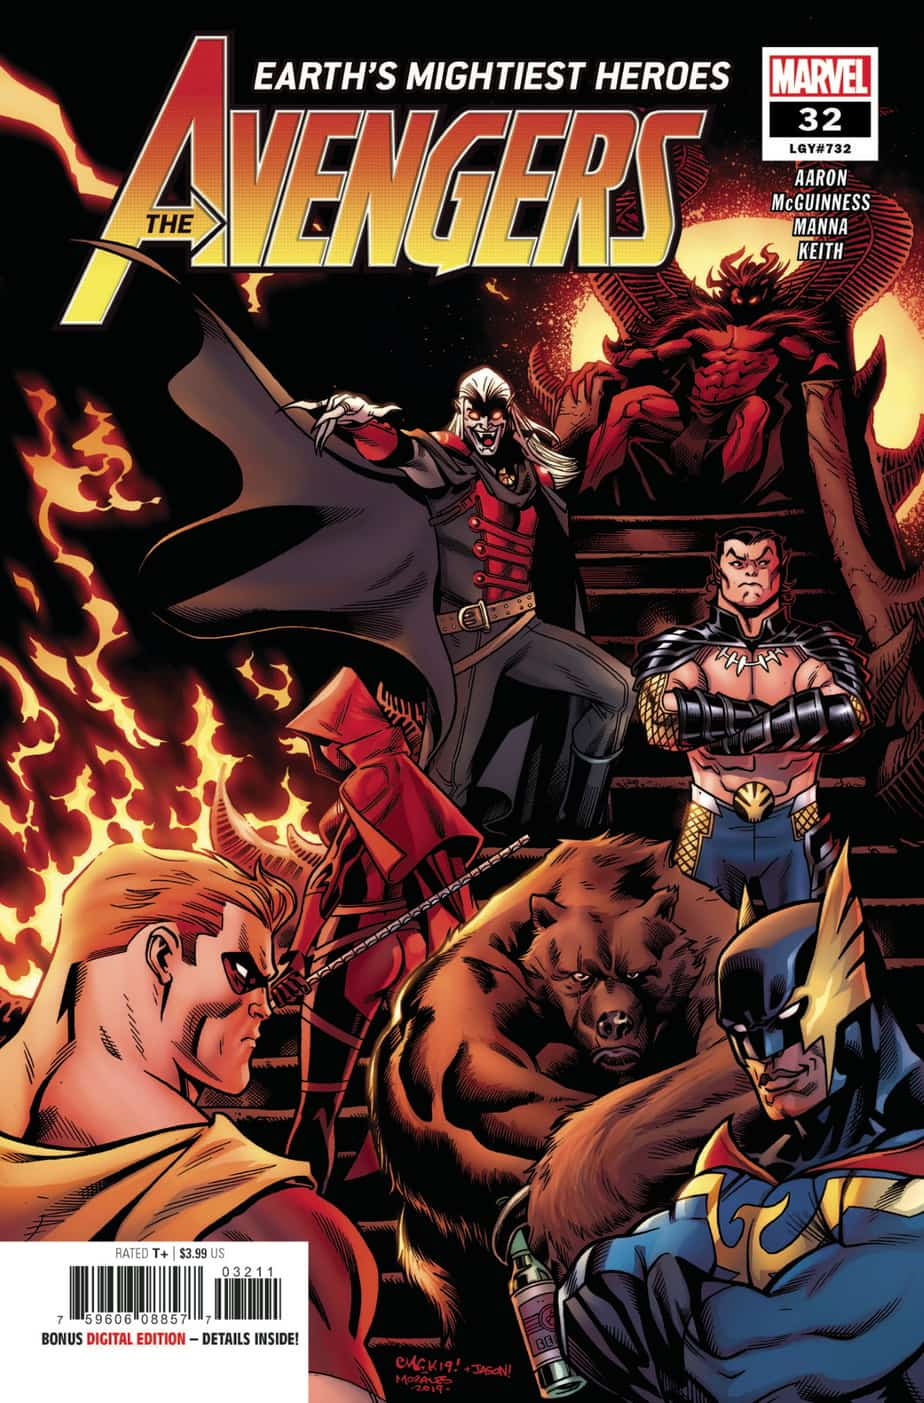 AVENGERS #32 - Cover A